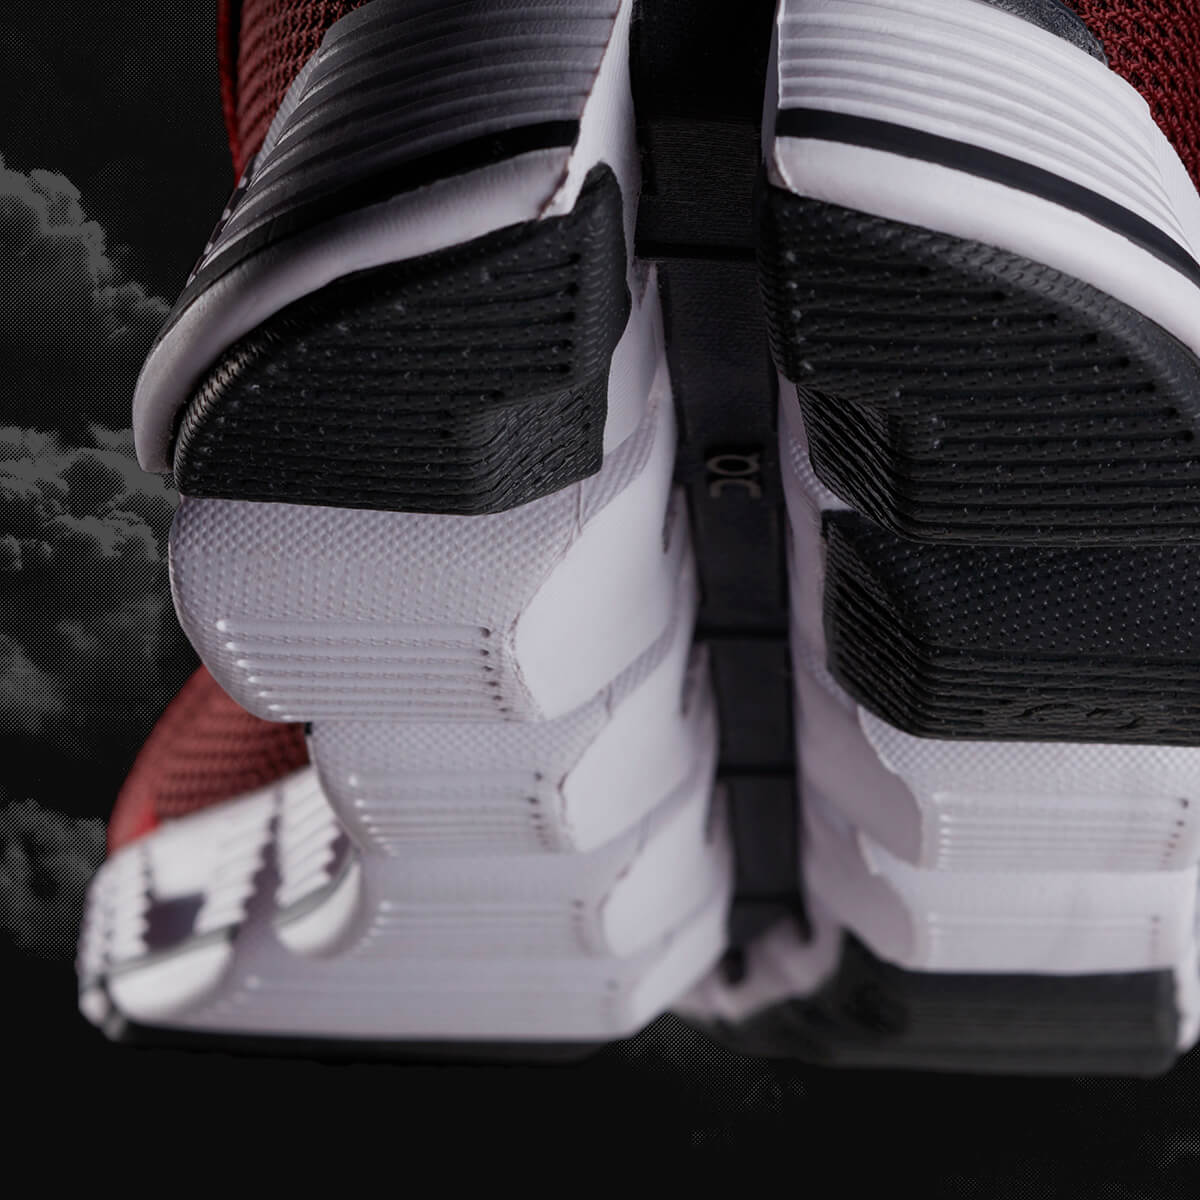 on cloud 2 shoes